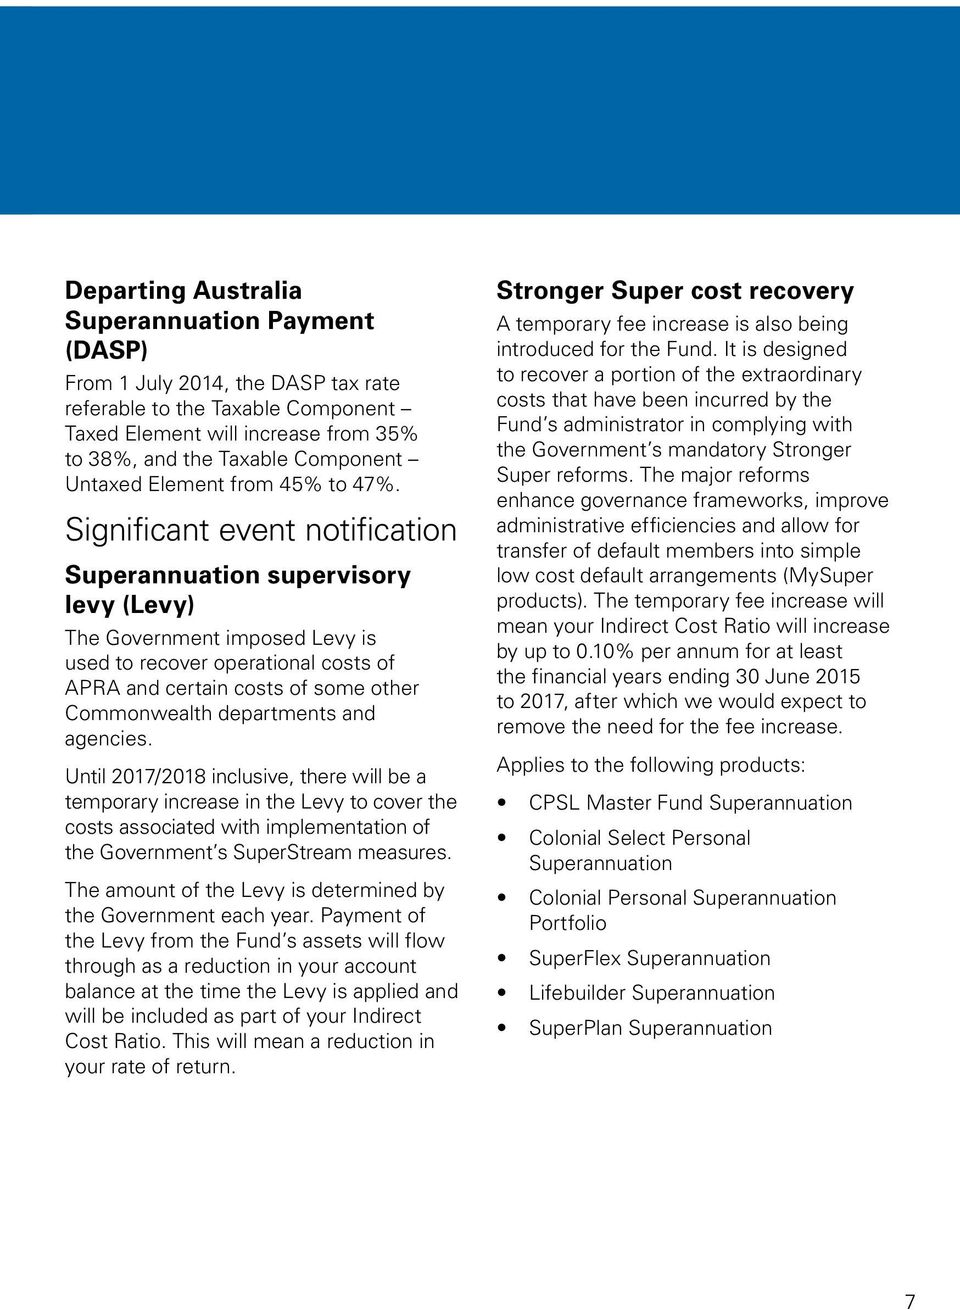 Significant event notification Superannuation supervisory levy (Levy) The Government imposed Levy is used to recover operational costs of APRA and certain costs of some other Commonwealth departments